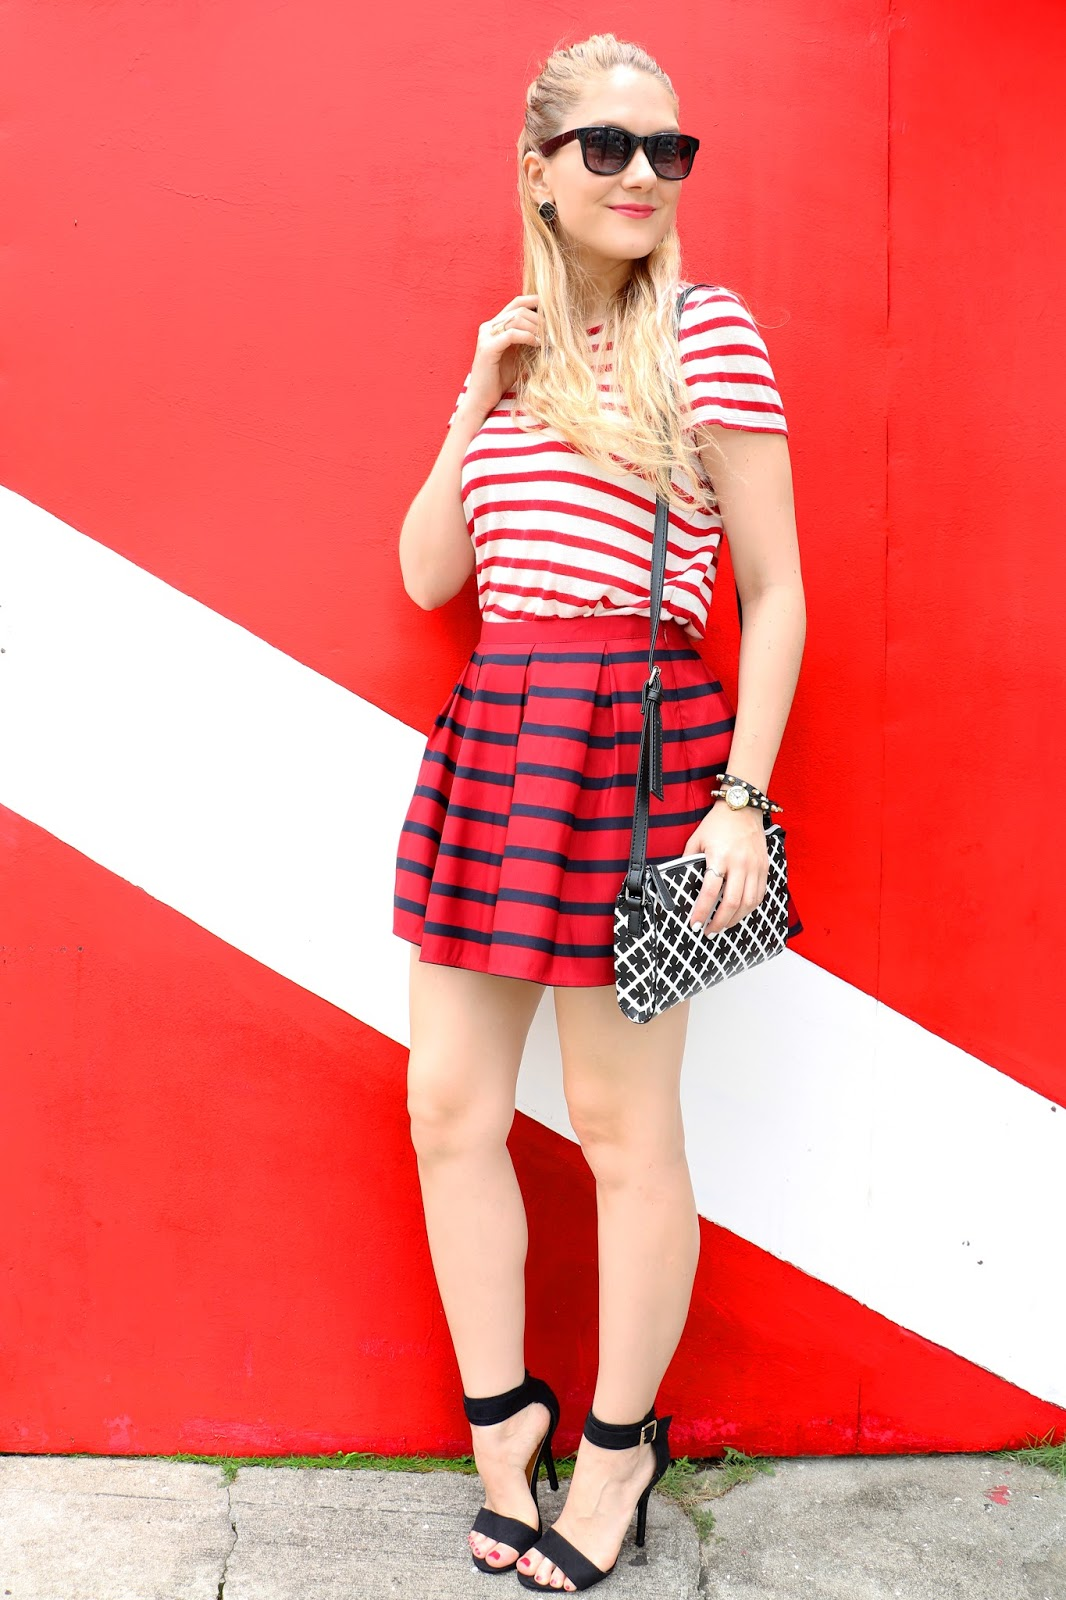 Love this outfit featuring lots of stripes!